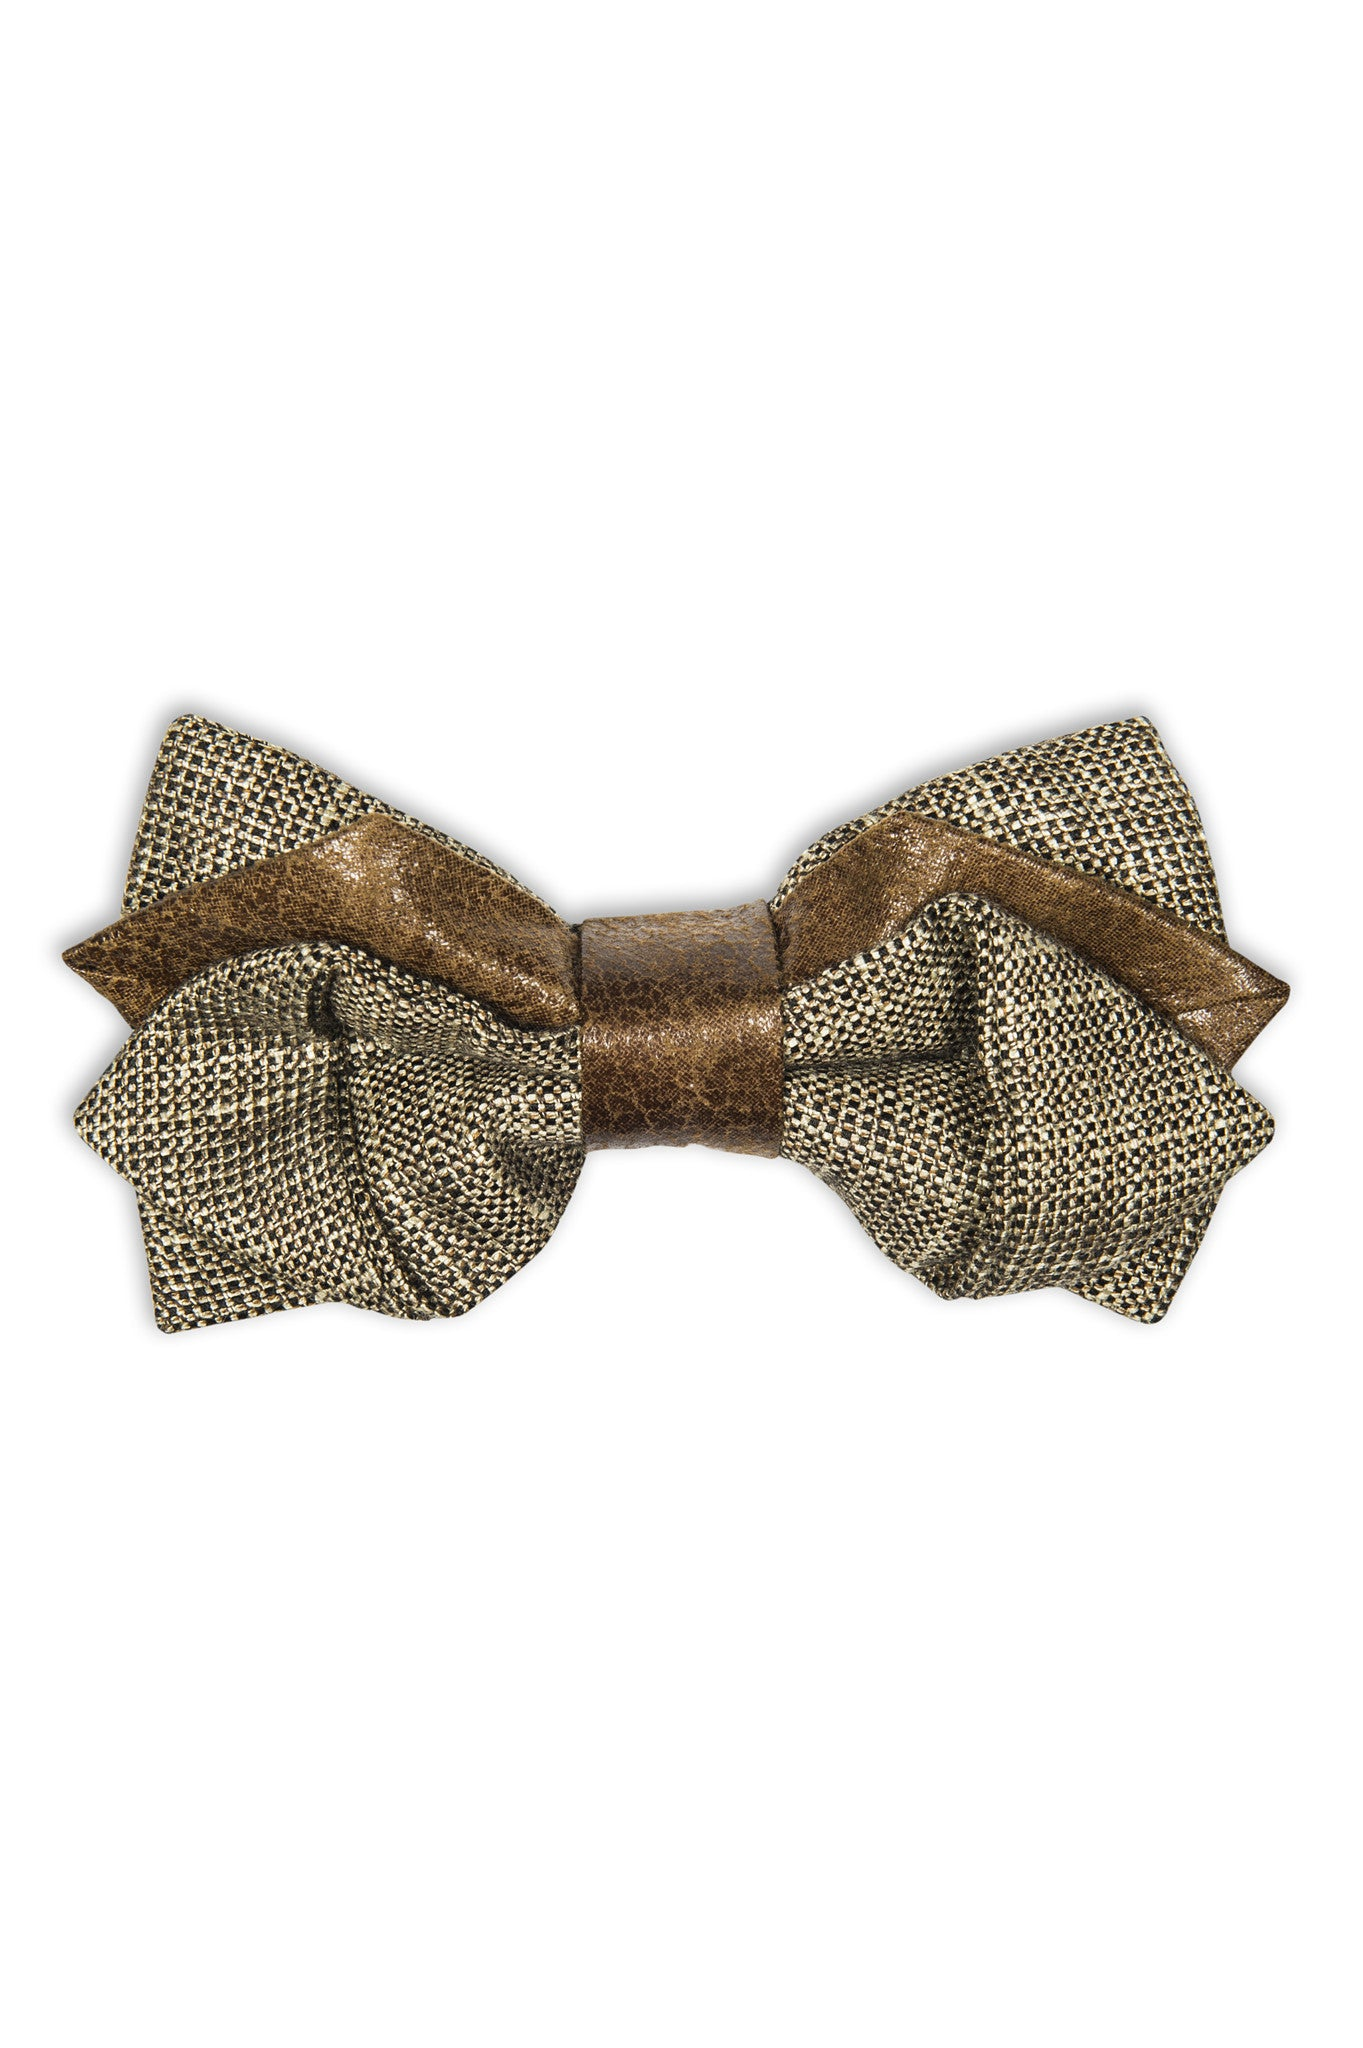 Handmade wool bow tie in a original cut - Noeud papillon avec coupe originale